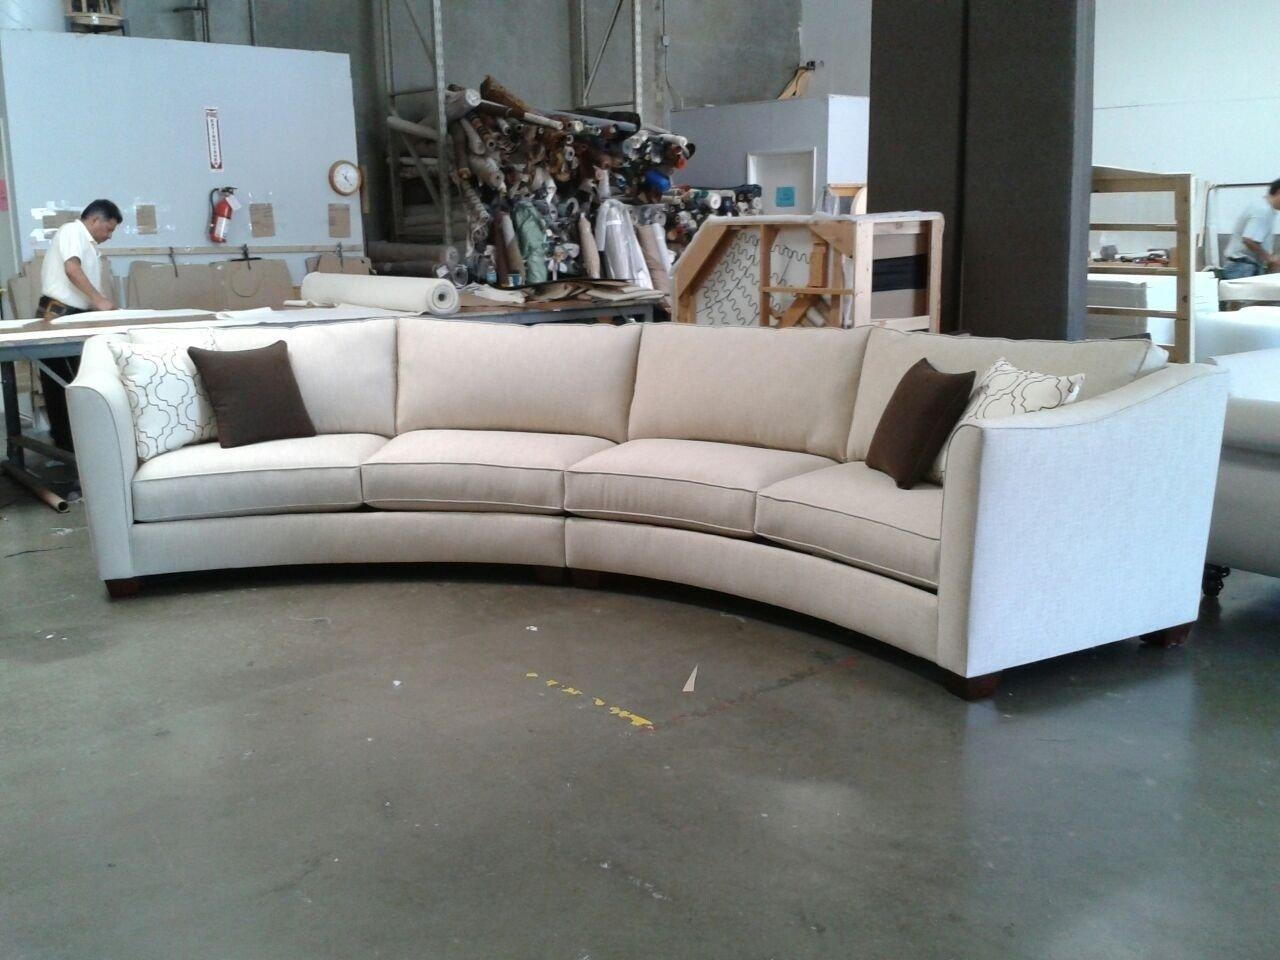 Curved Sectional Sofa: Glamour For Interior — Home Design Pertaining To Circular Sectionals (View 14 of 15)